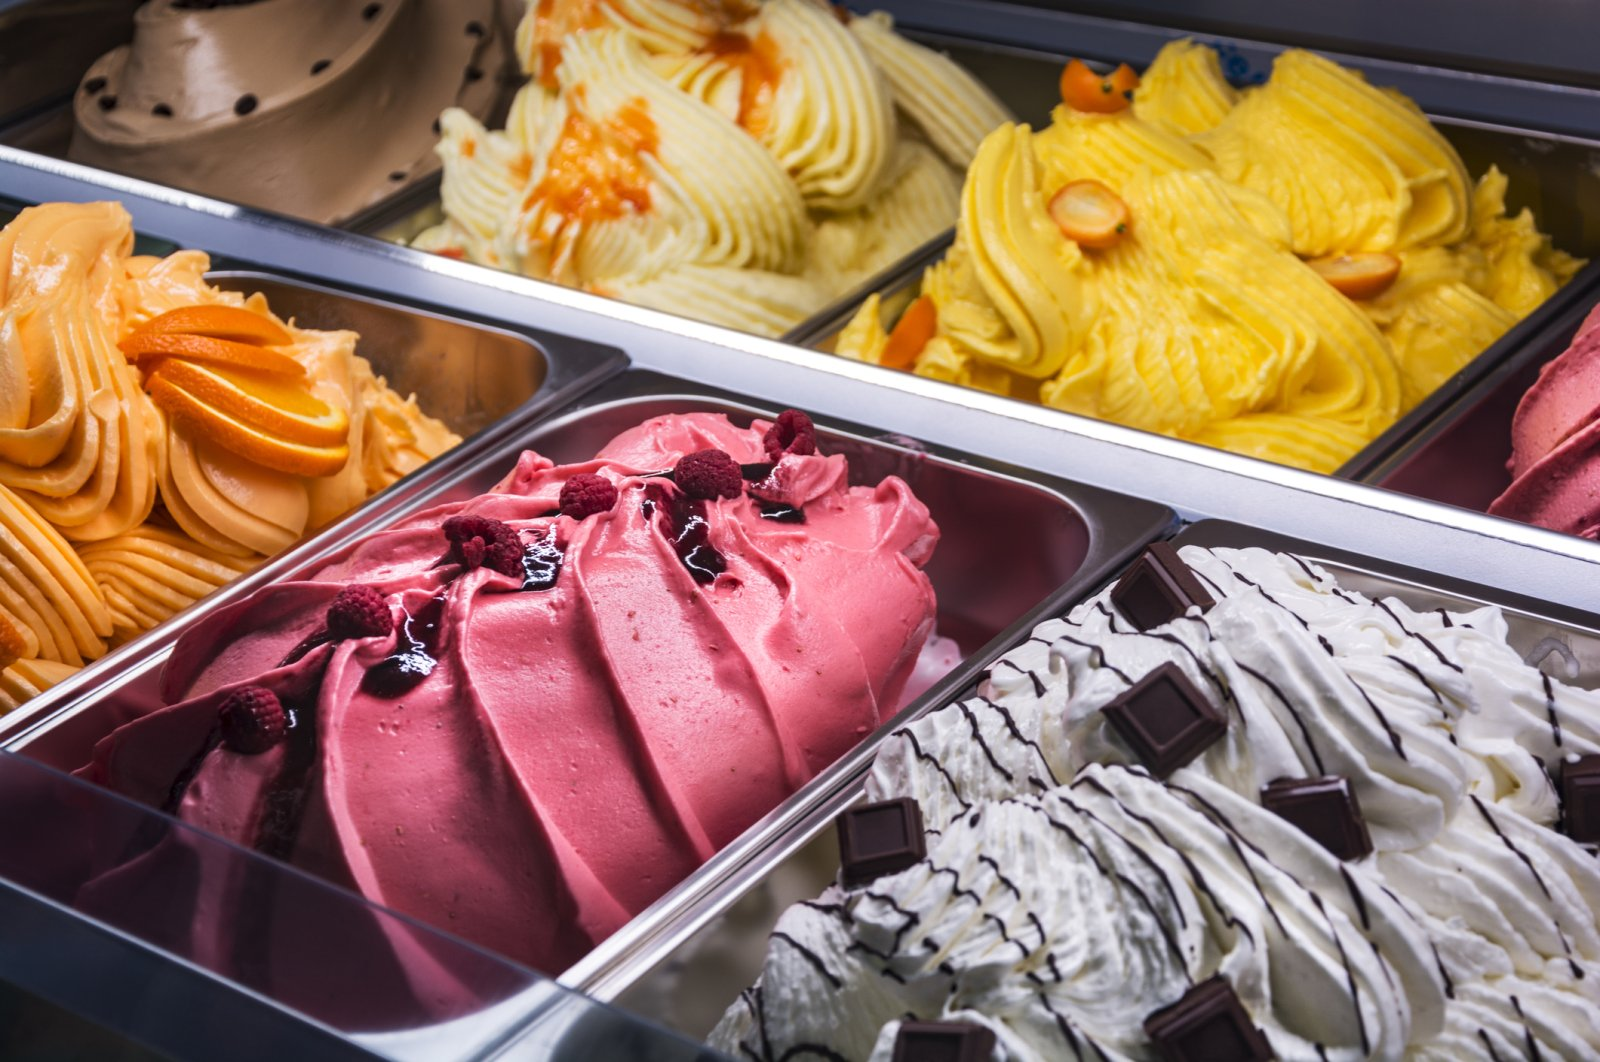 Whether you opt for classics like vanilla or chocolate or more adventurous choices like pistachio or lemon, make sure you pick the best quality. (iStock Photo)